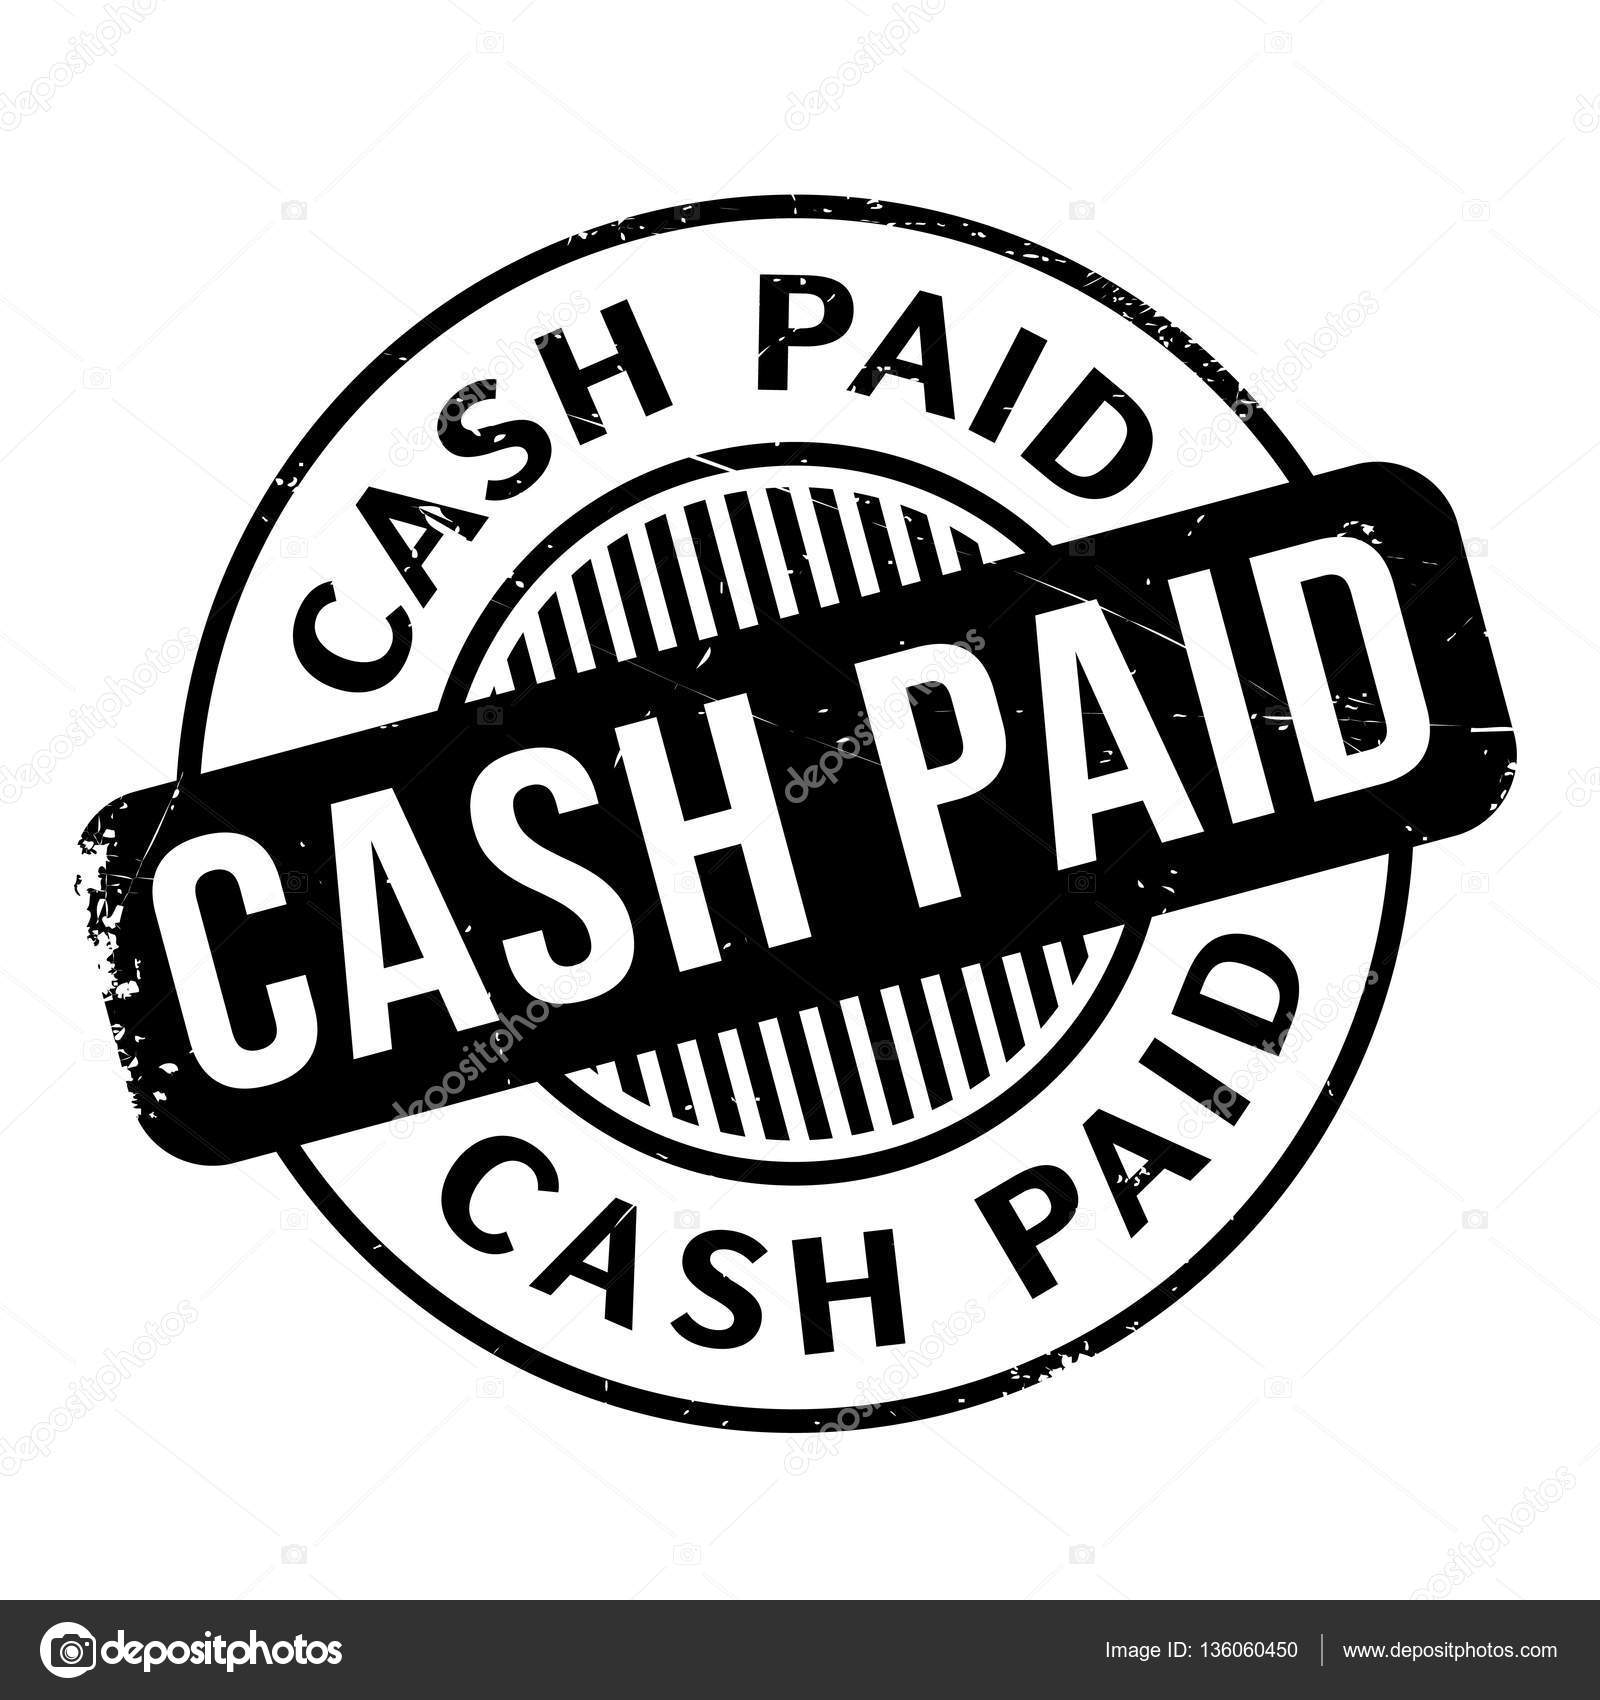 Cash Paid Rubber Stamp